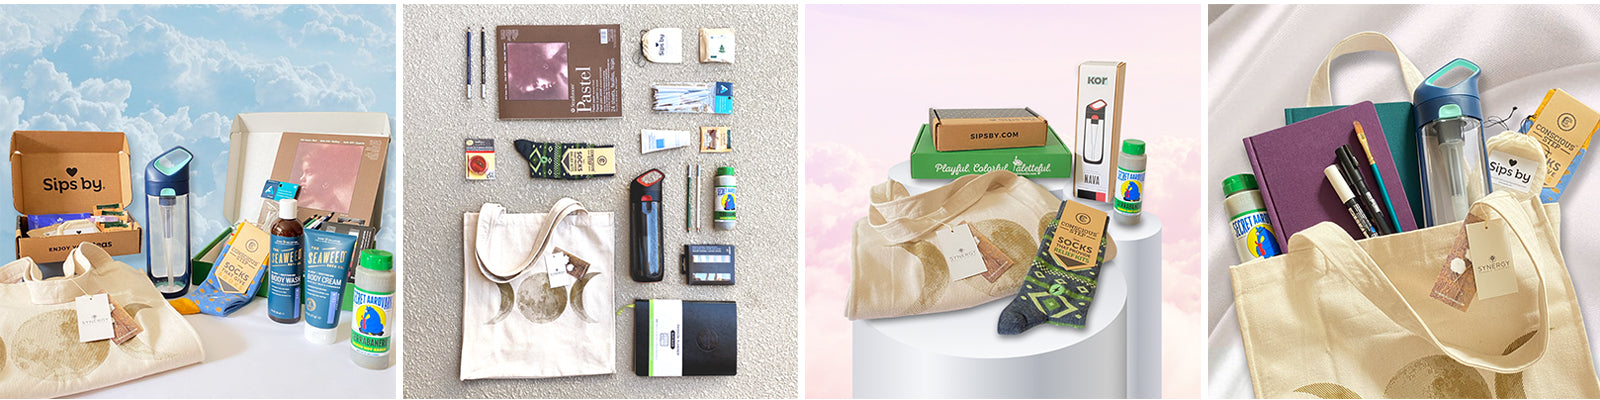 Kor Relax Pack Giveaway for Essential Workers